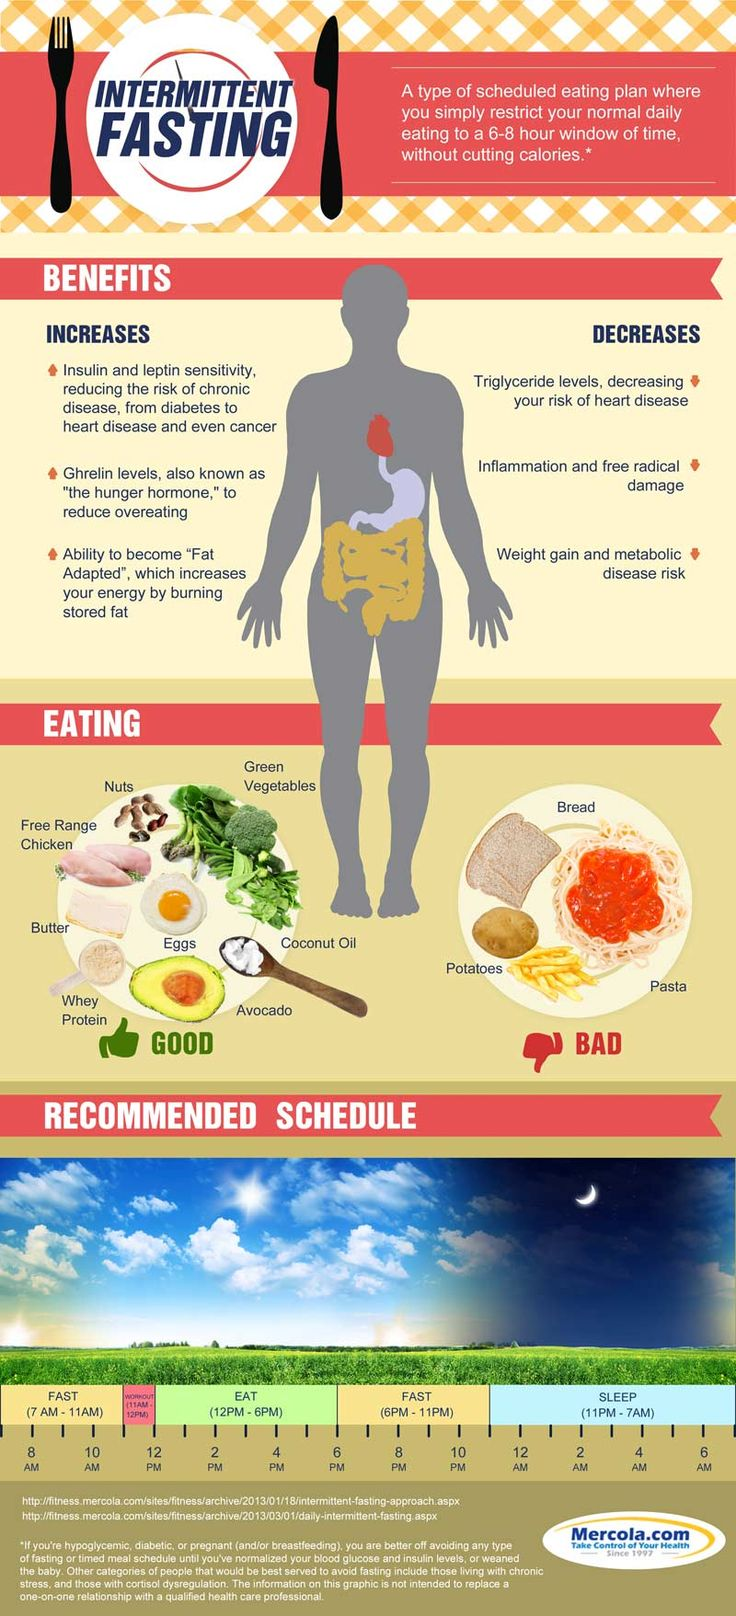 How Intermittent Fasting Can Slow Degenerative Disease, Protect the Brain and Slim the Body | Wake Up World